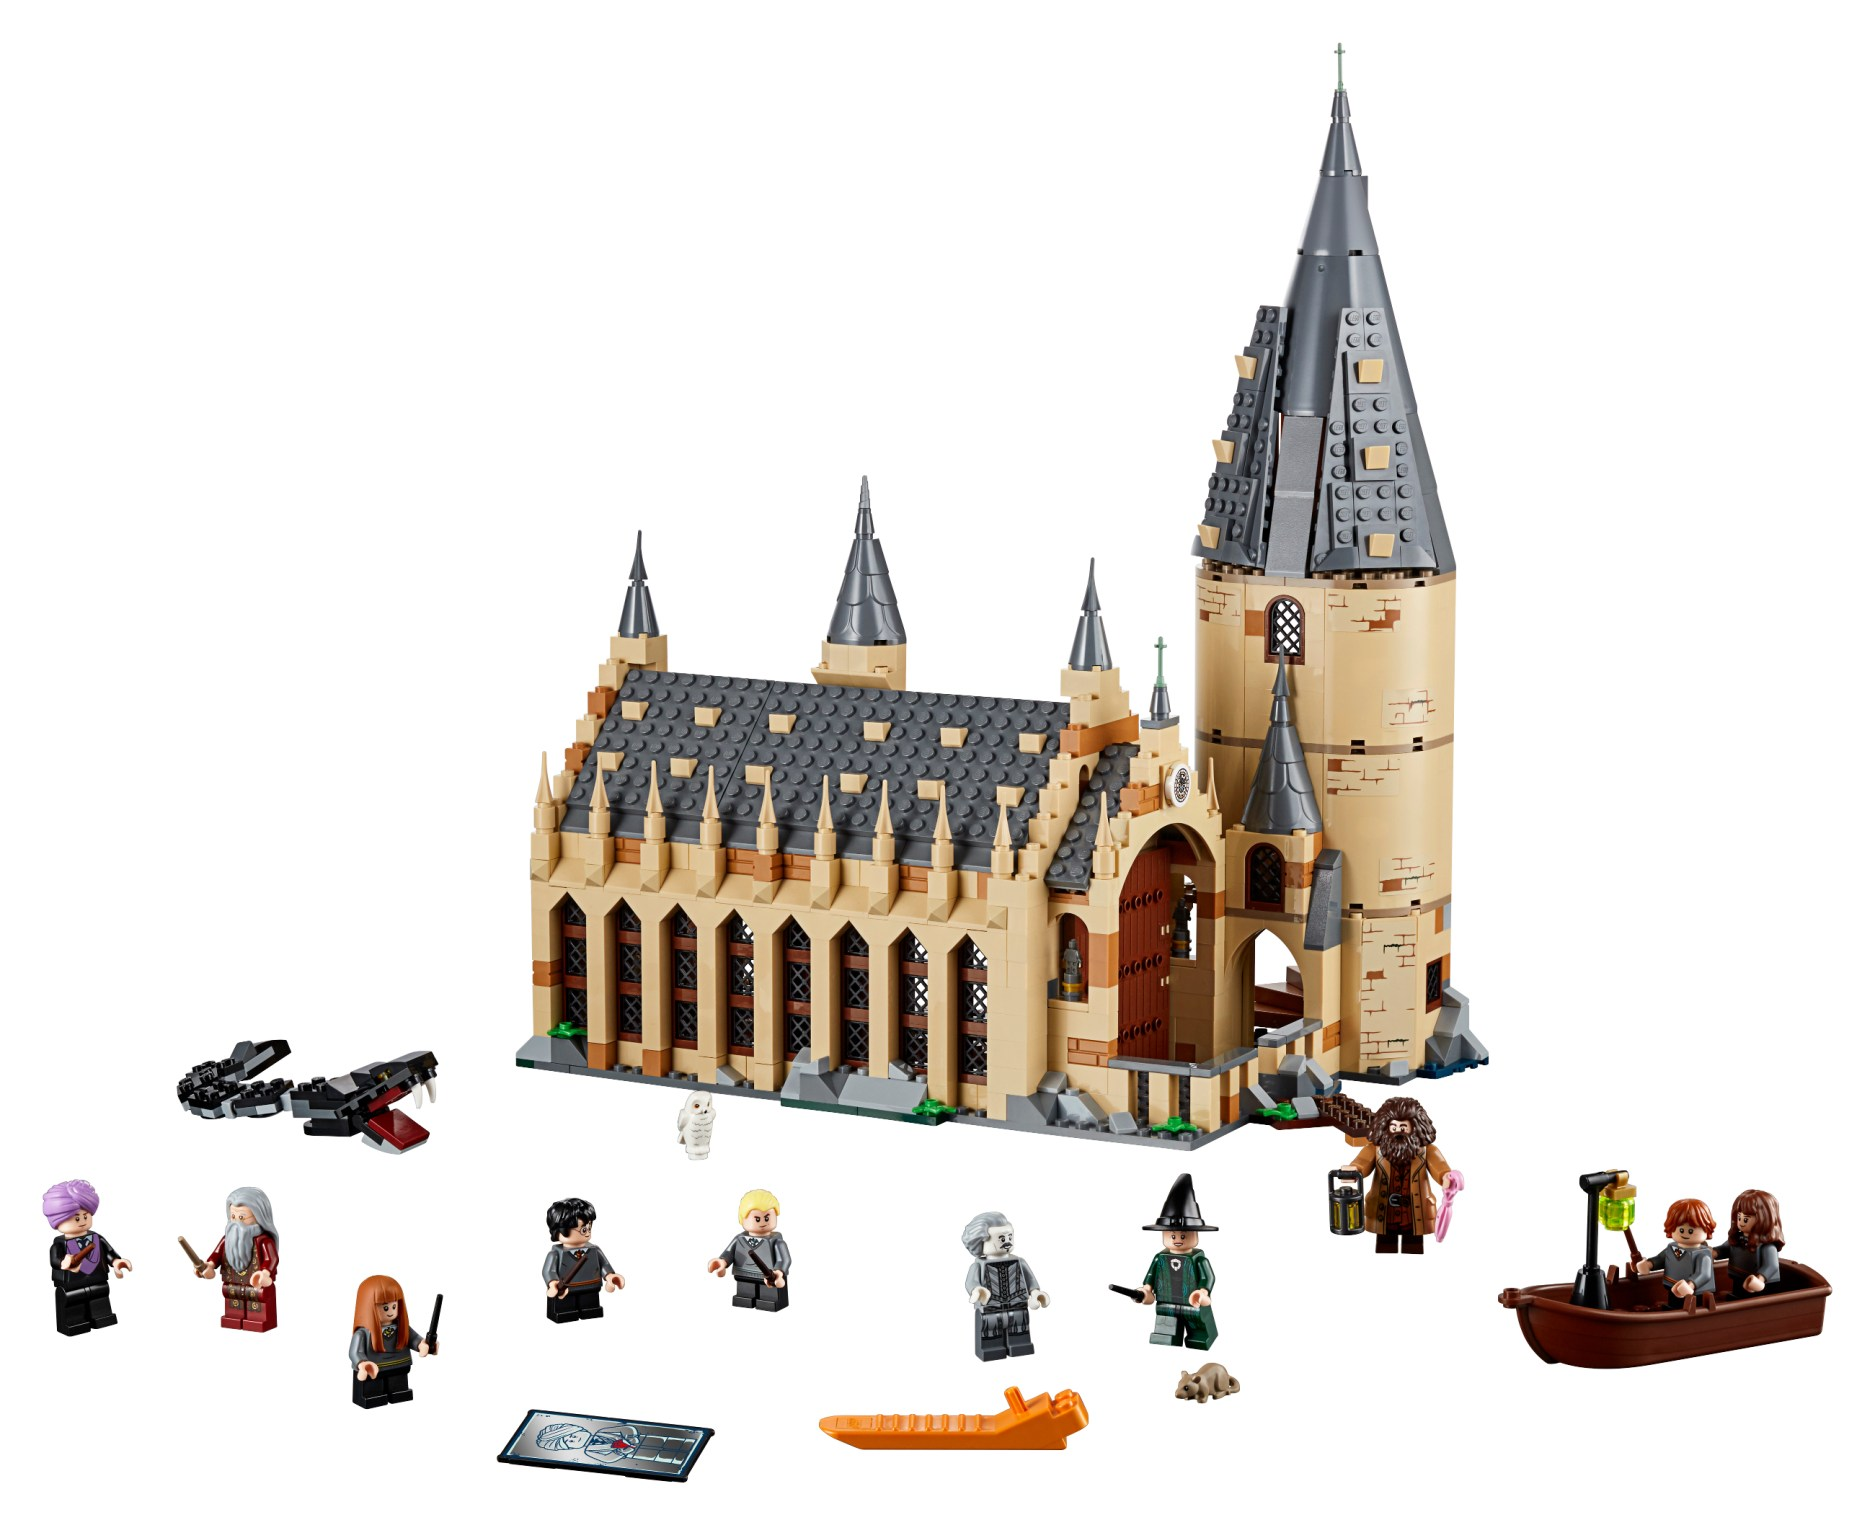 Lego Harry Potter Sets Return In 2018 Starting With 75954